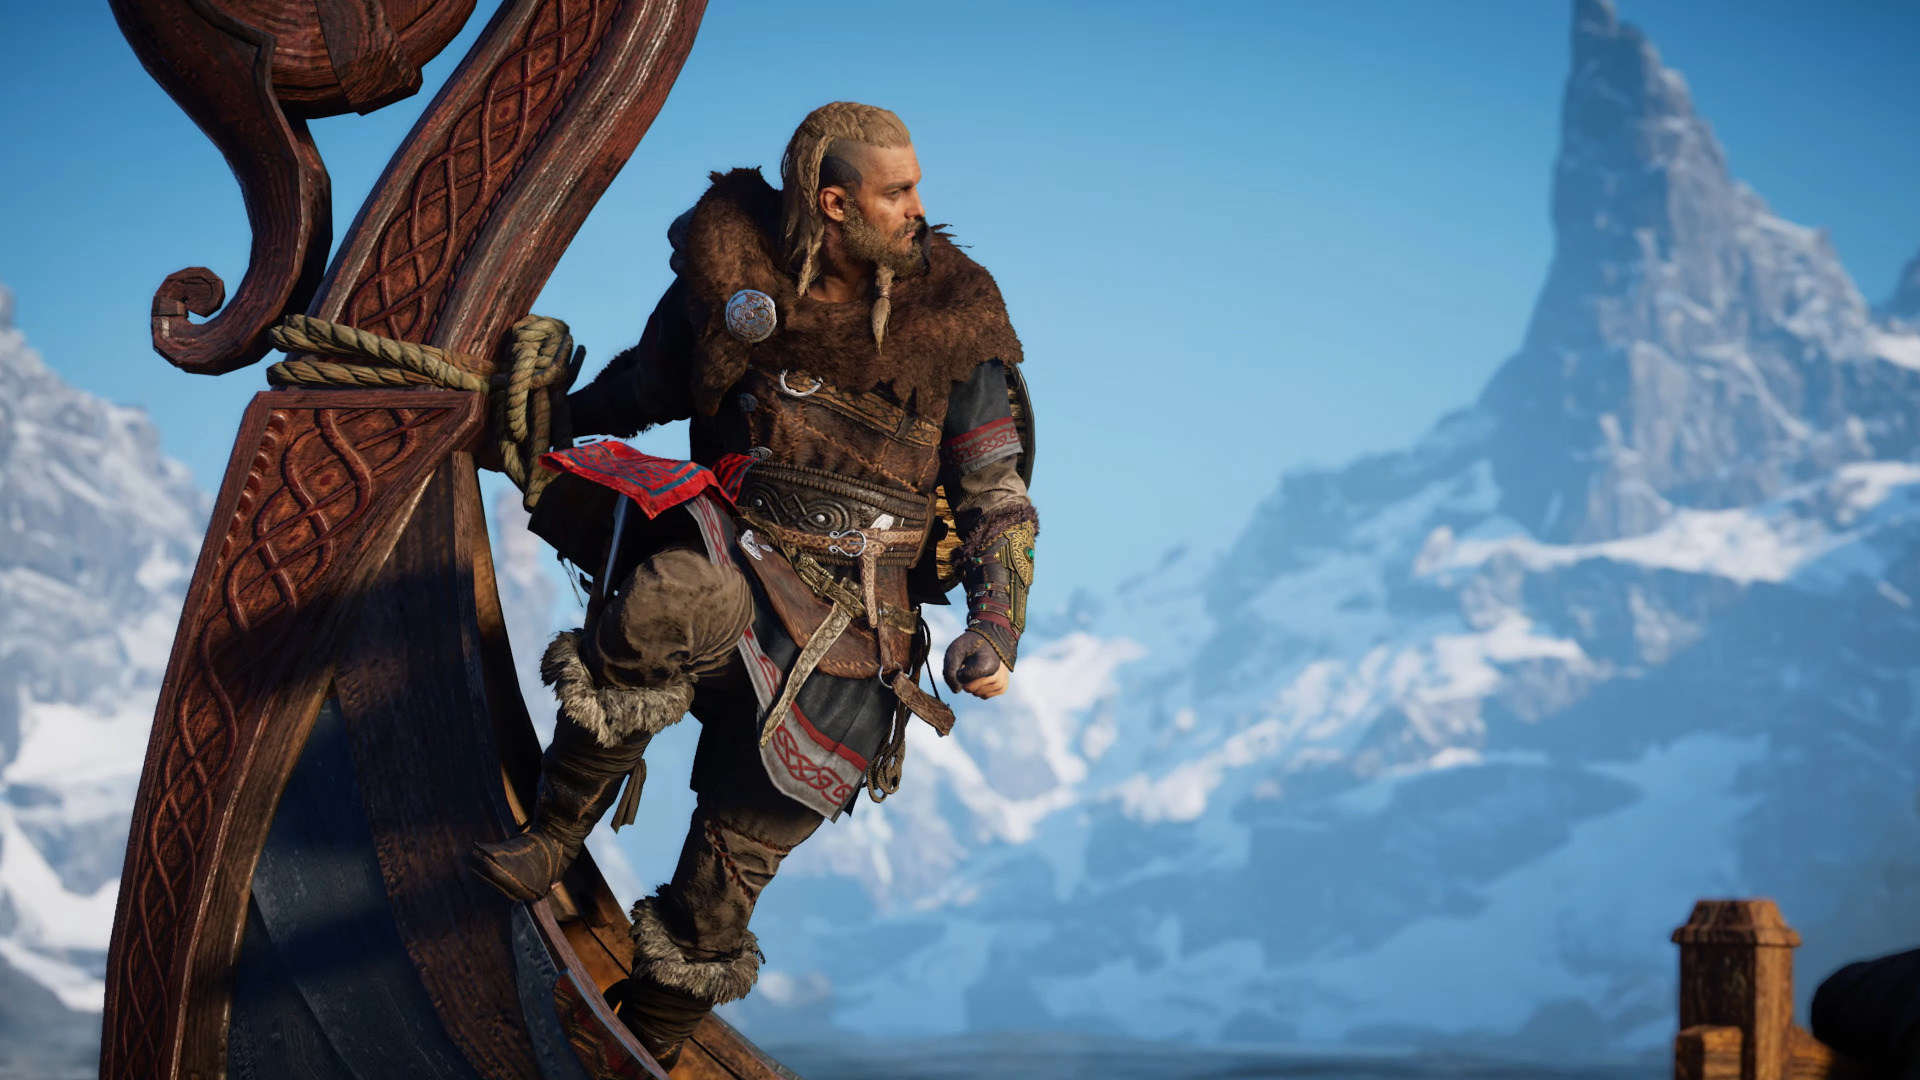 Trailer, Ubisoft, actionspiel, Assassin's Creed, Assassin's Creed Valhalla